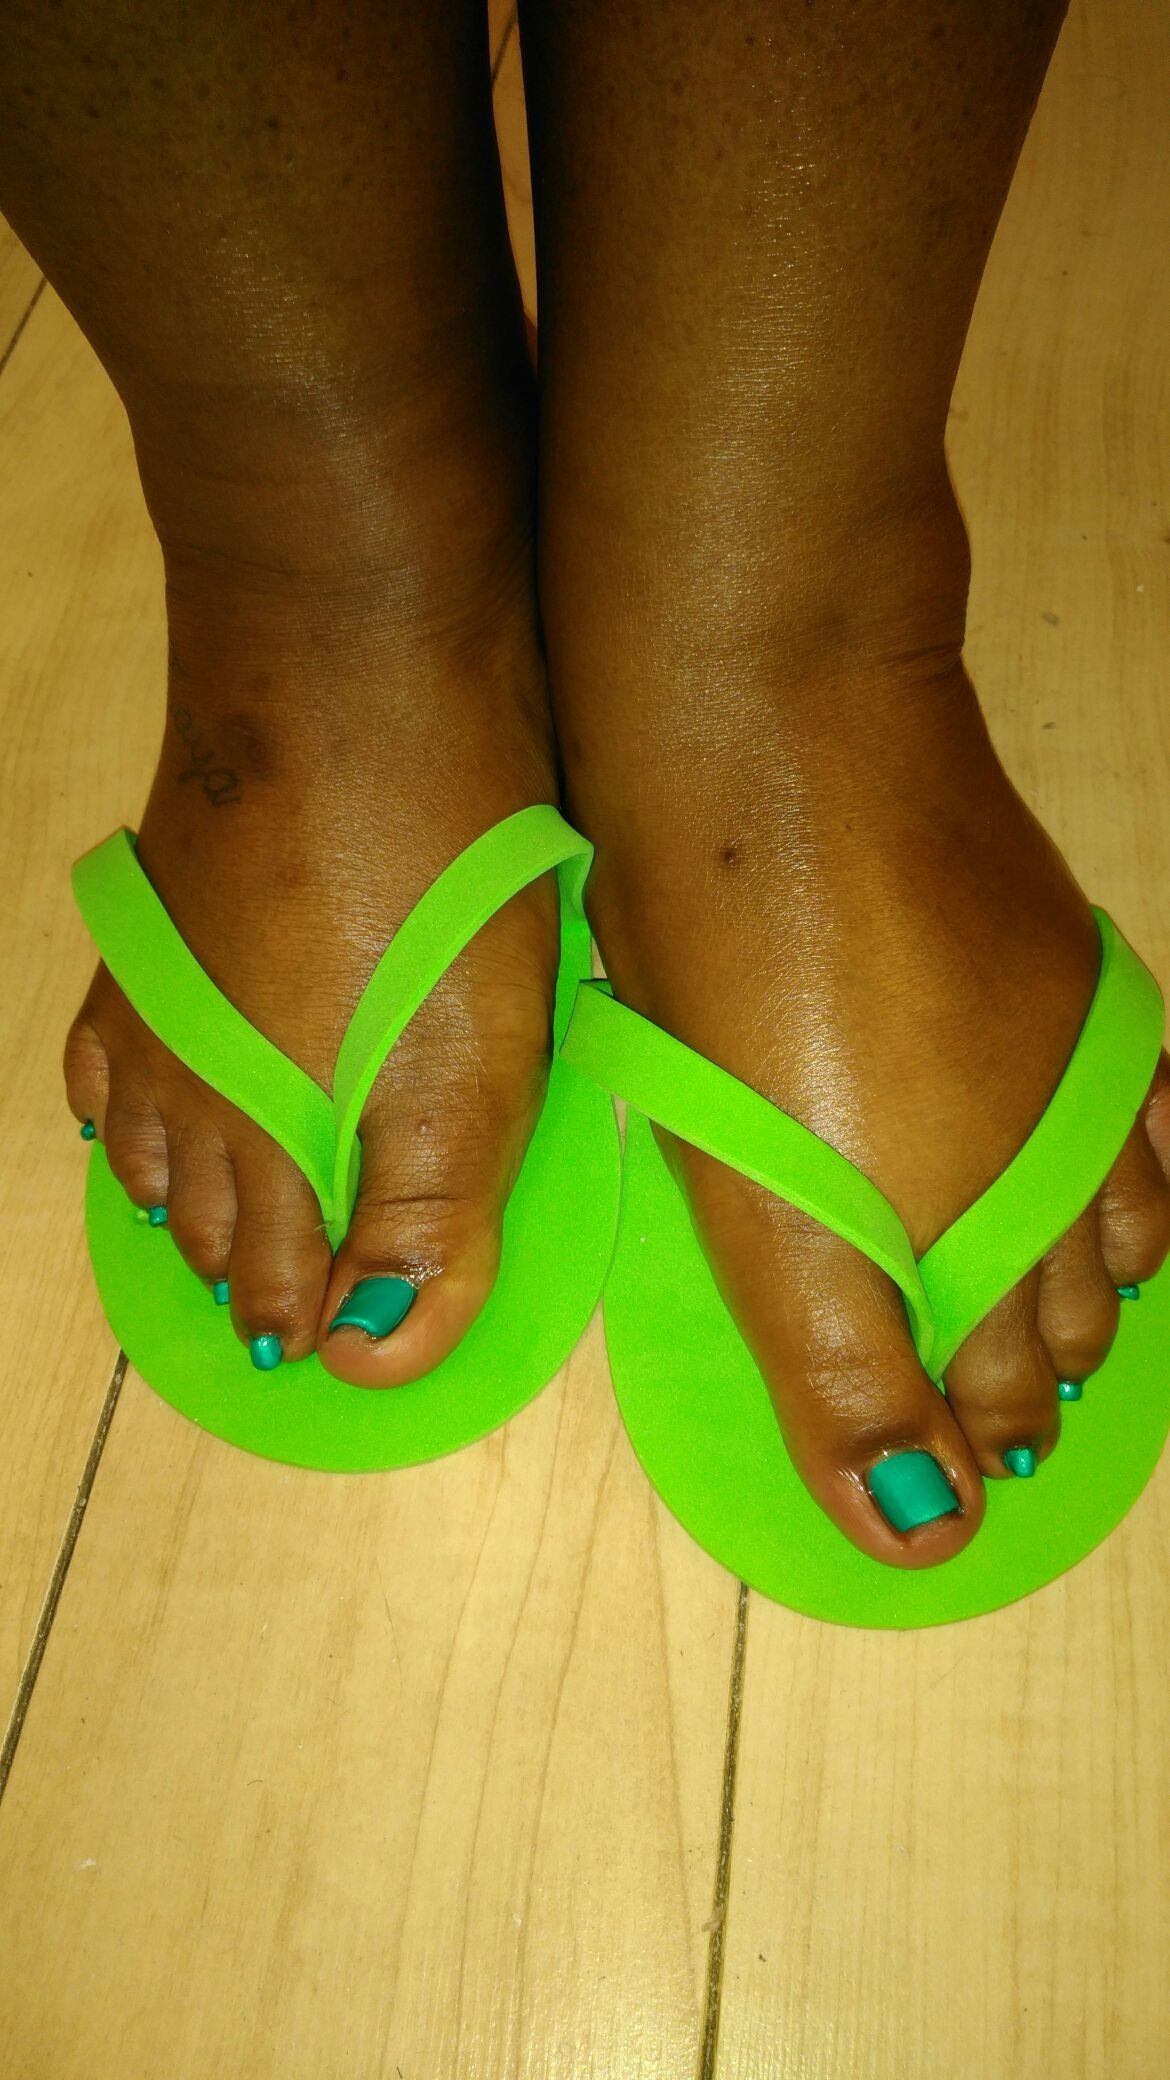 Thank u so much Ms. LaTavia Allen for getting your #toes done with #ThaPolishQueen today! #ComeSeeMe #PrettyGurlsFeet #CleanBlackMasterNailTech #IDoNotRush #ITakeMyTime #UrMoneyWillBeWellSpent #UrToesMustBePerfectBeforeYouLeave #ComeExperienceMyHomemadeScrub #SpaologyNailSpa #ISupportBlackOwnedBusinesses Spaology Nail Spa & More 3000 Kavanaugh Blvd, Ste. C LR, AR 72205 To book your appointment email me @ PrettyGurlsFeet@gmail.com or call me at the salon @ 501.265.0303 or to book directly and purchase your service... Go to my website @ me on IG: @ms_beautiful_feet #ImWaitingOnYou